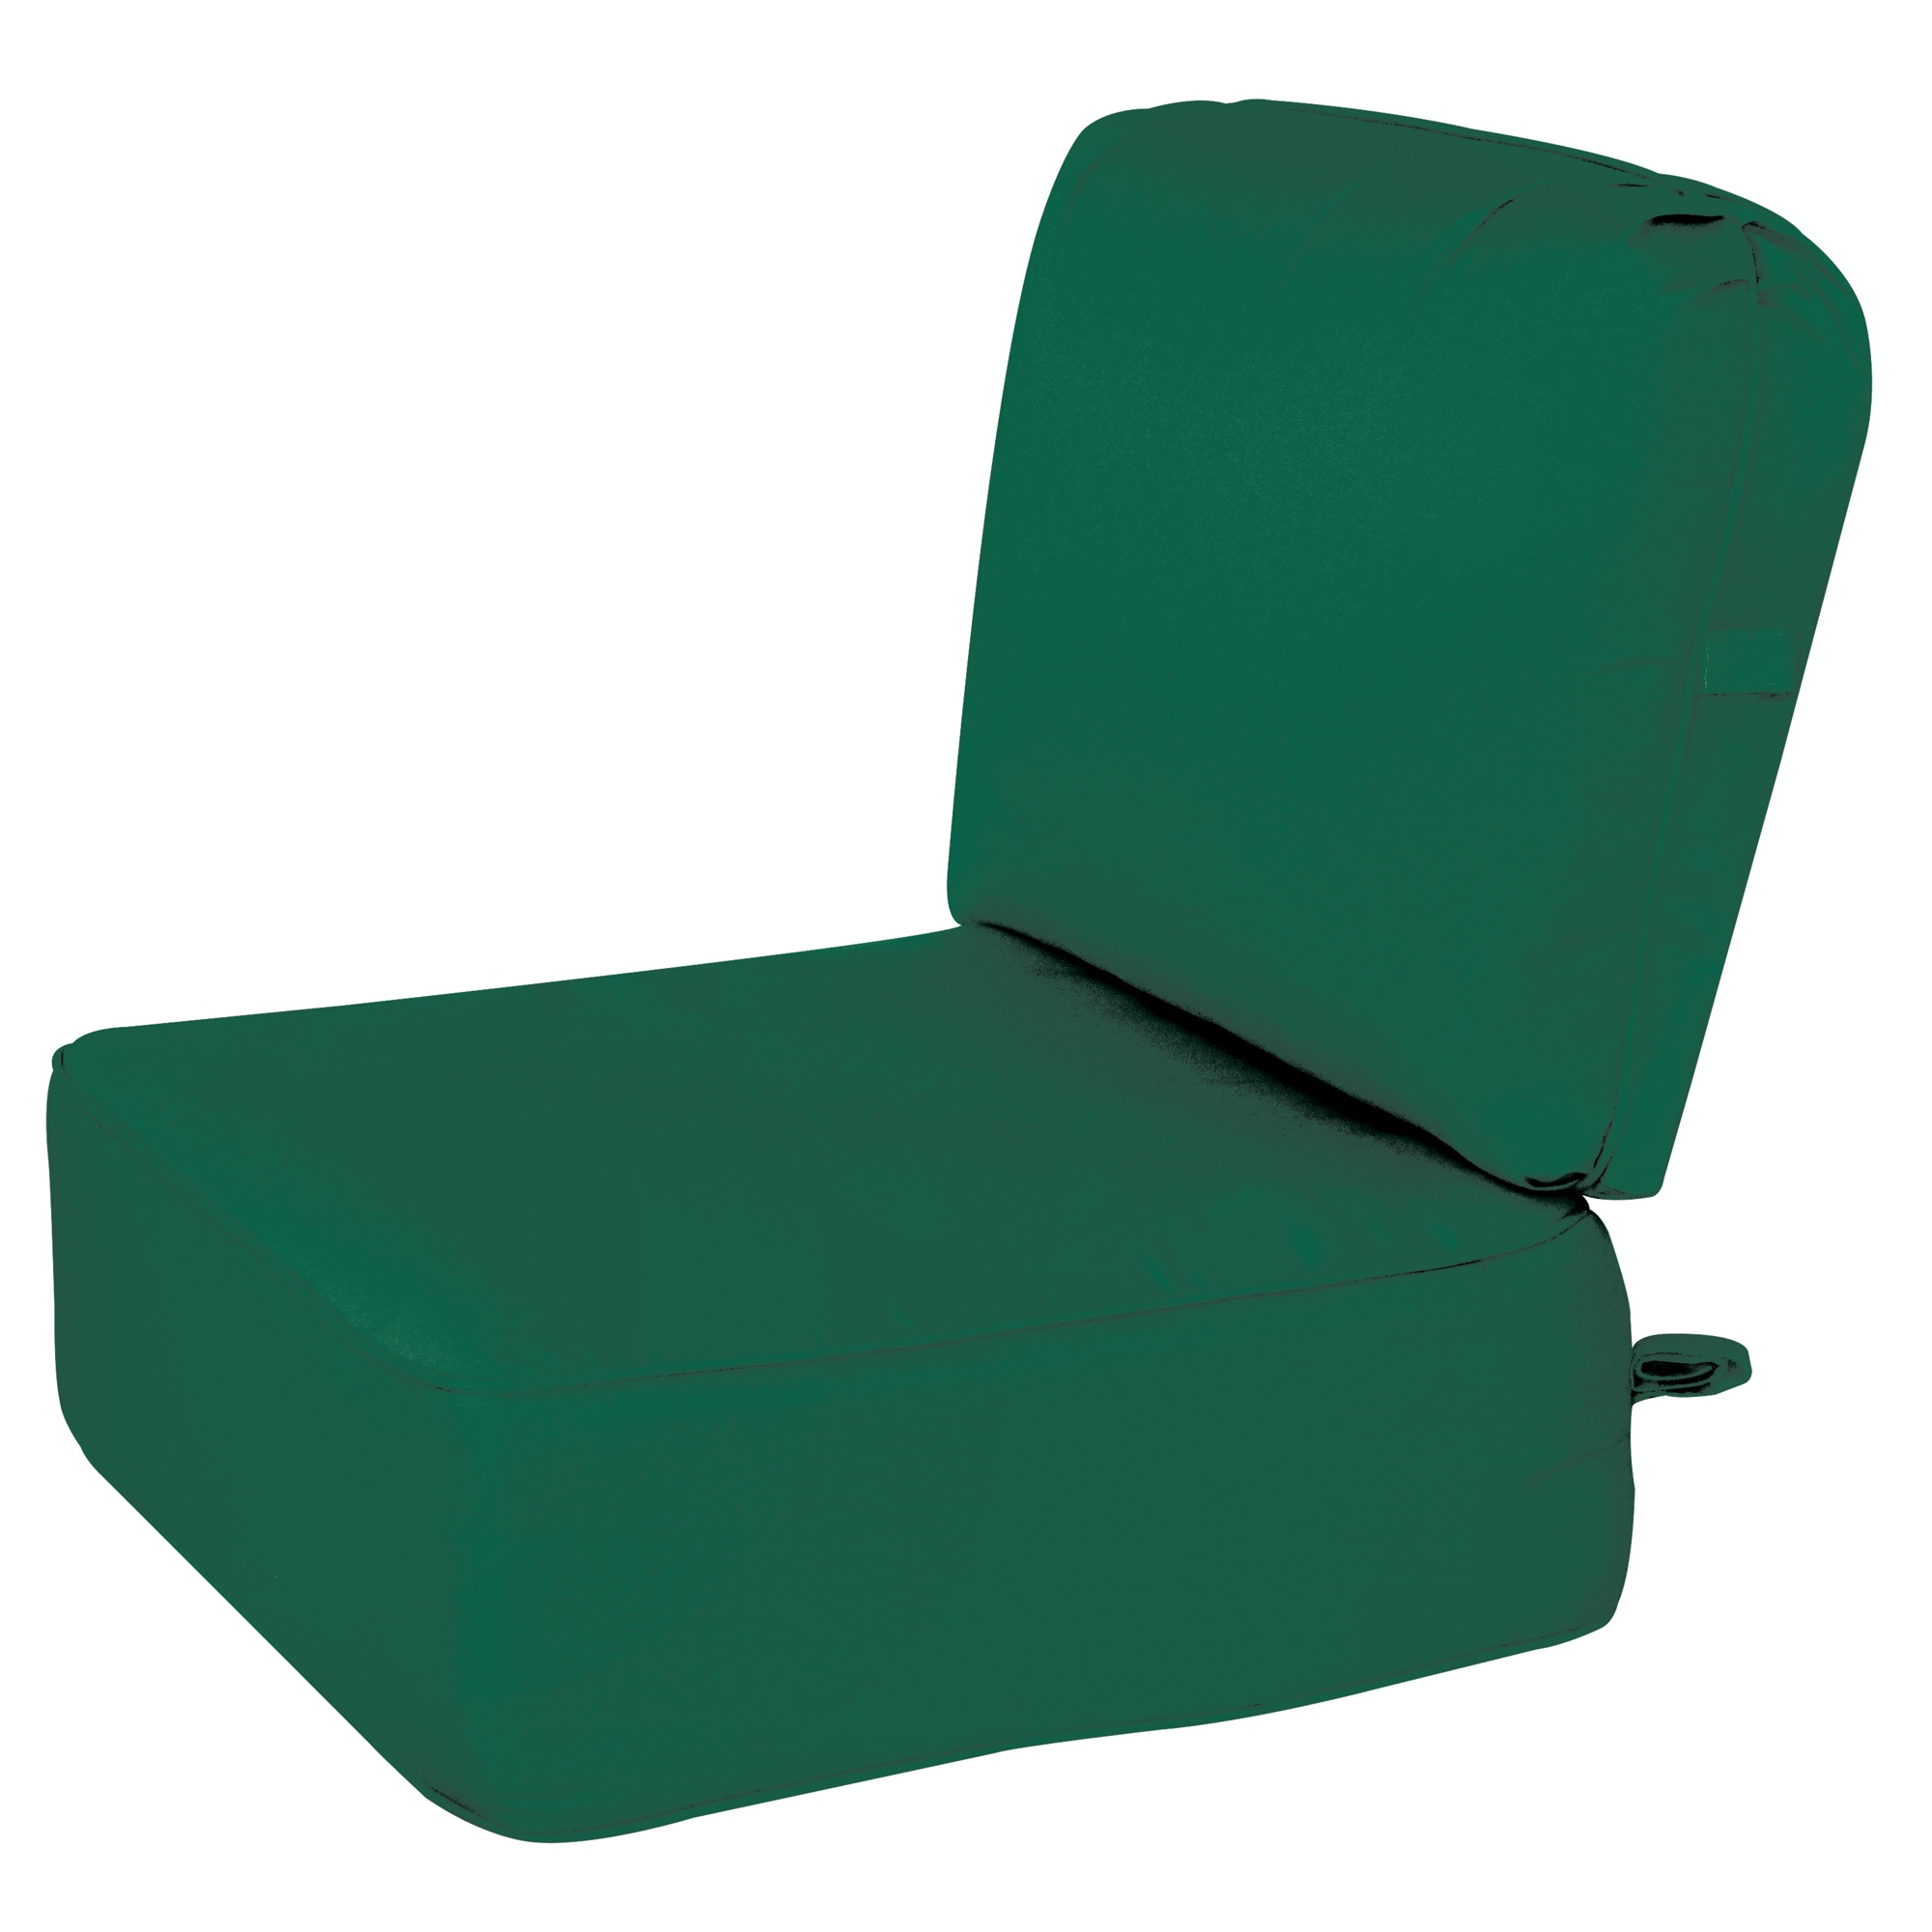 Sunbrella Seat Cushions | Sunbrella Pillows Clearance | Sunbrella Outdoor Seat Cushions